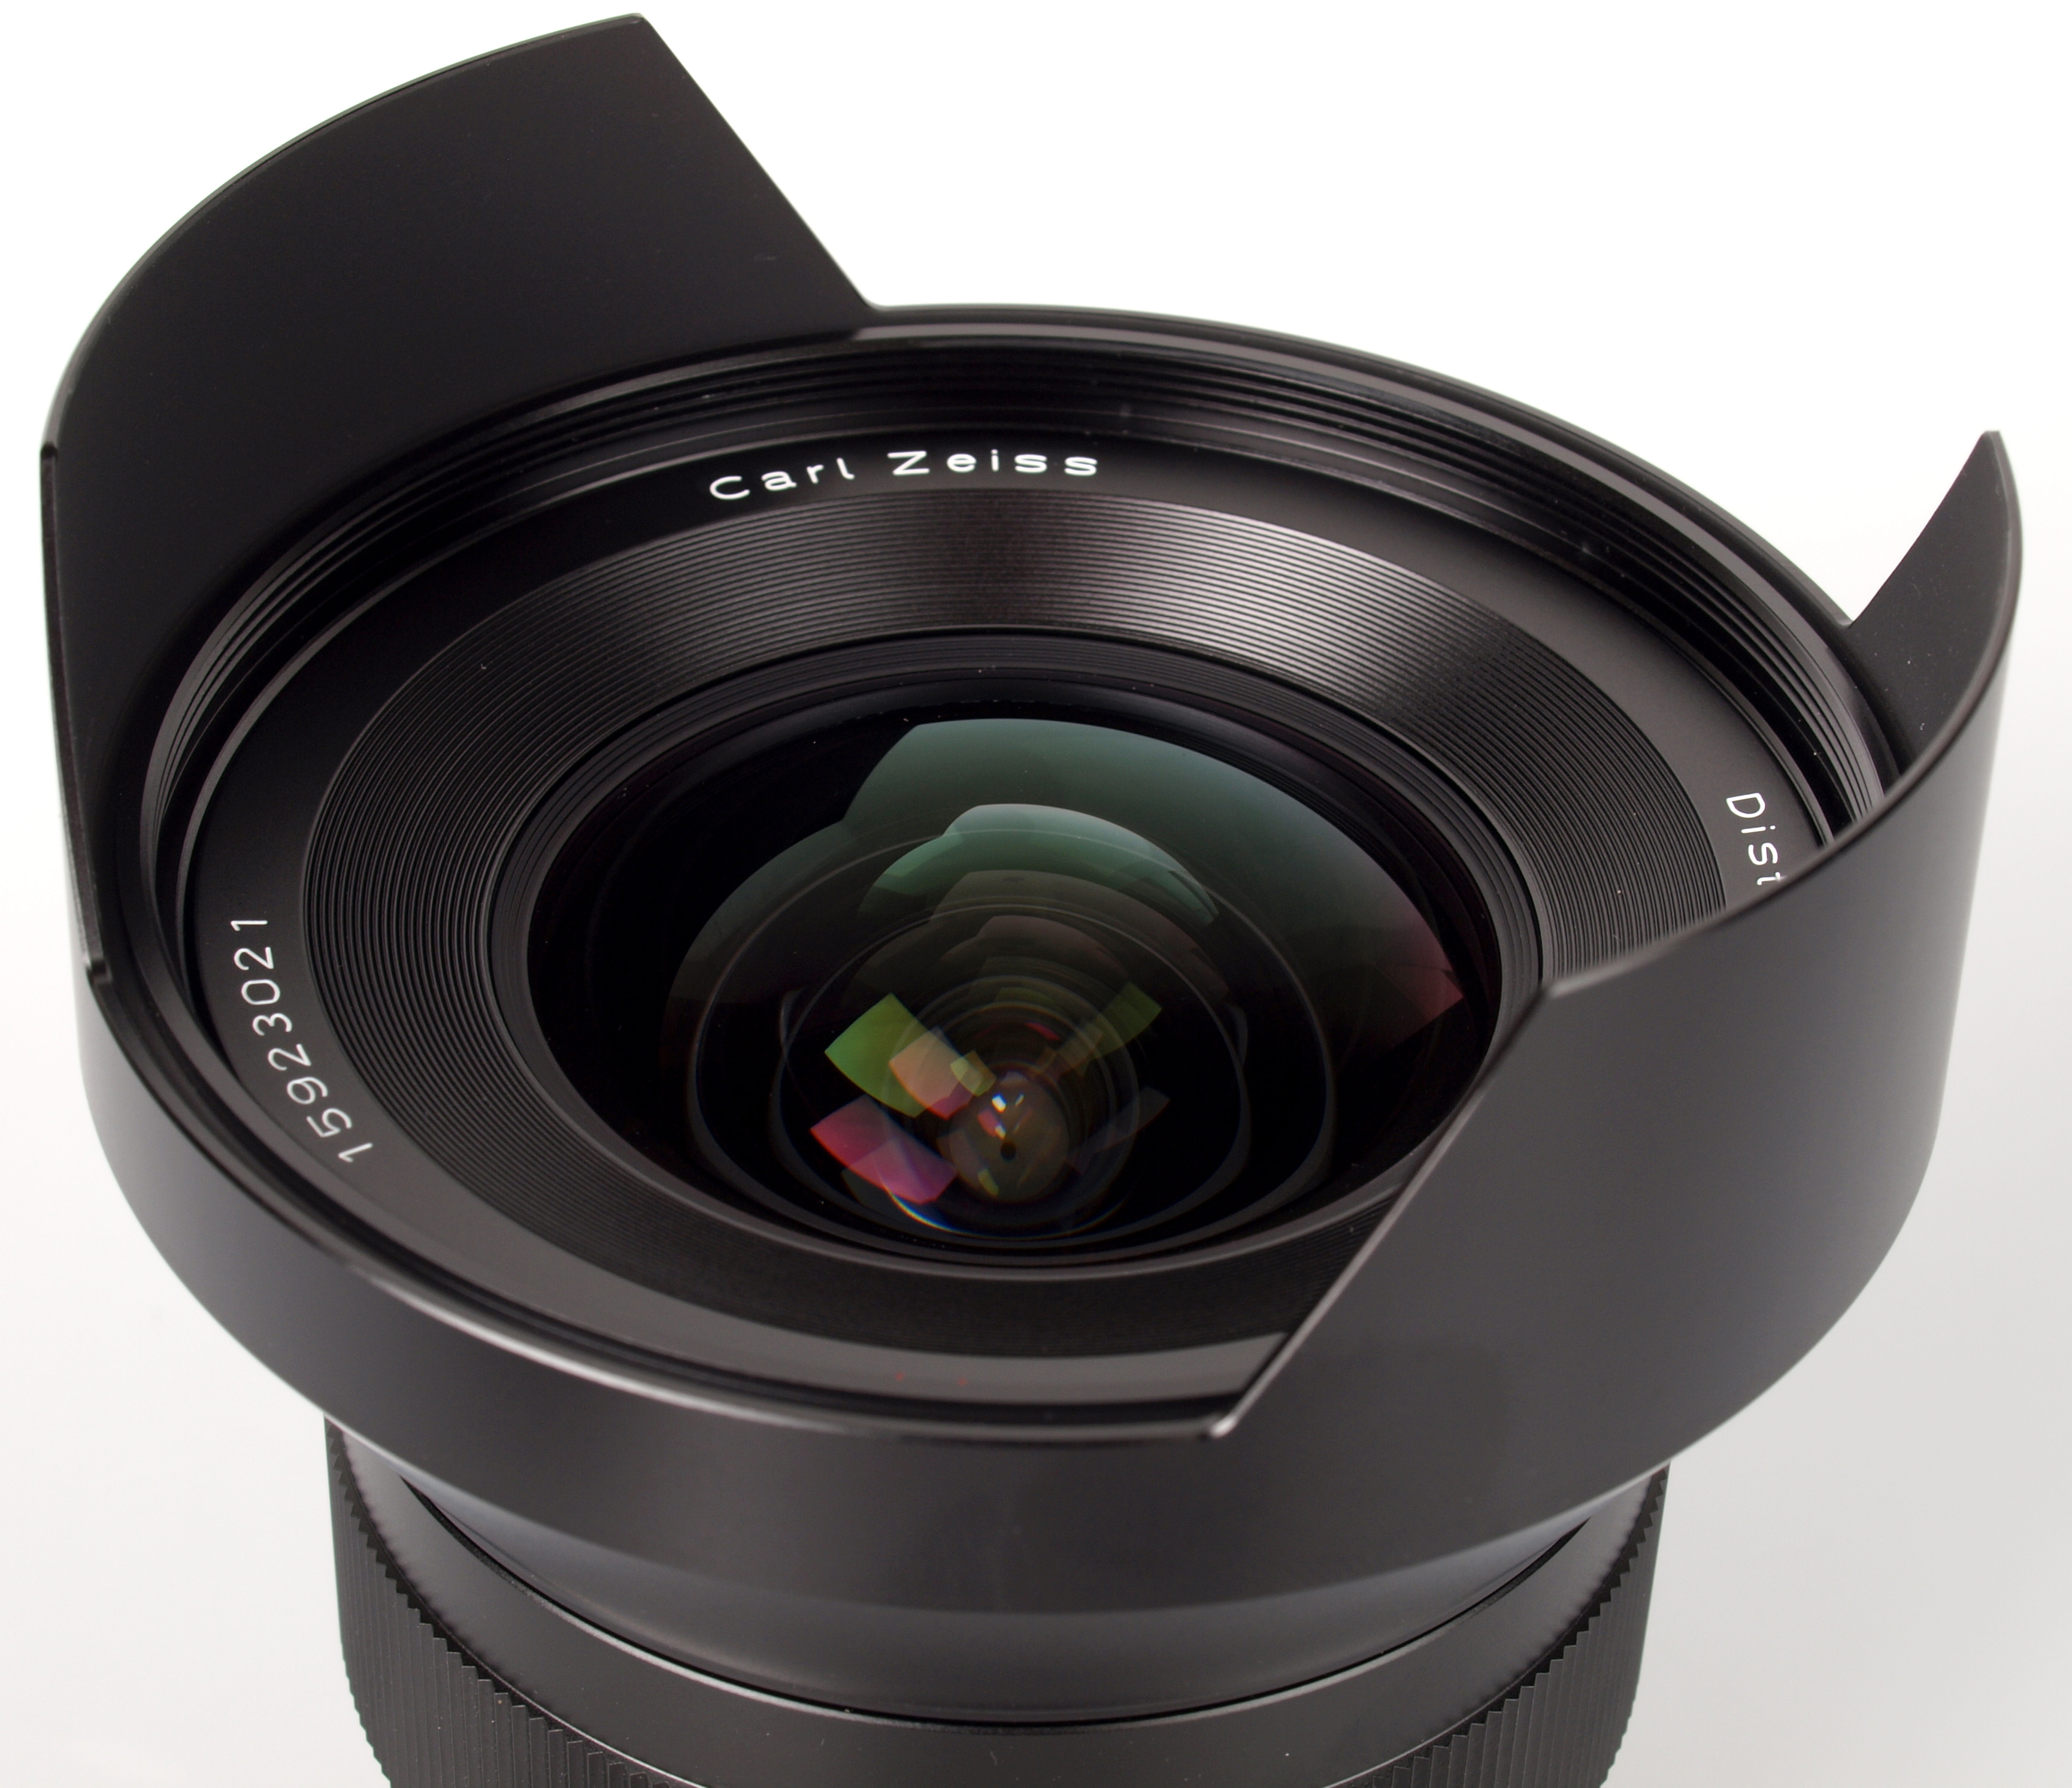 Carl Zeiss ZF Distagon T* 15mm f/2 8 Lens Review | ePHOTOzine